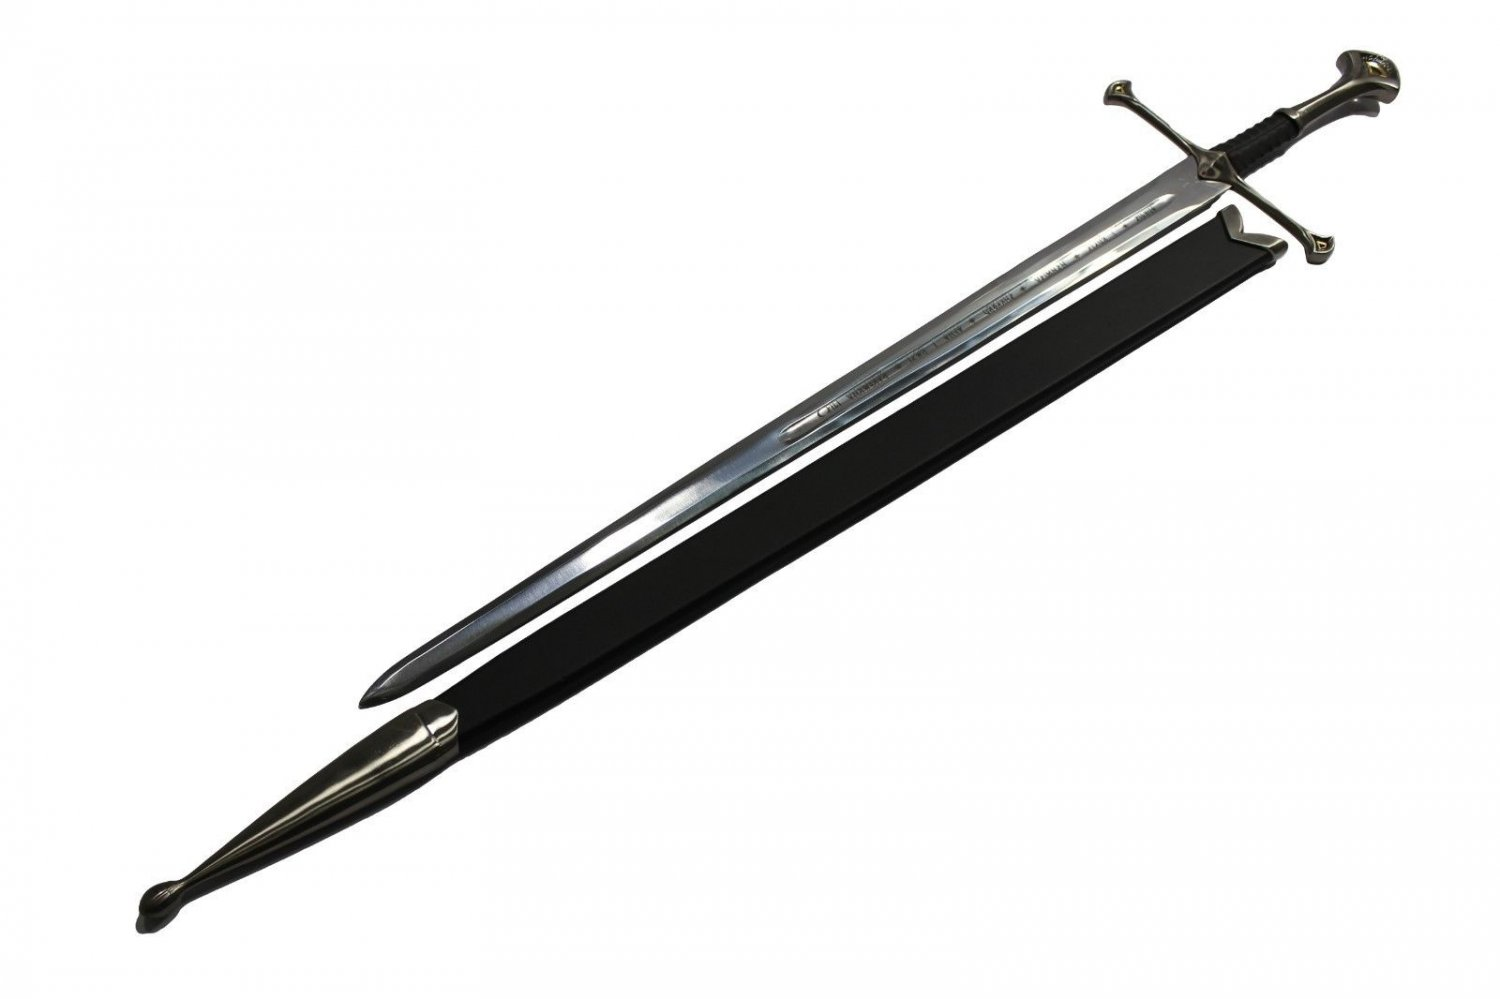 Lord of the Rings Sword Anduril | Aragorn sword LOTR